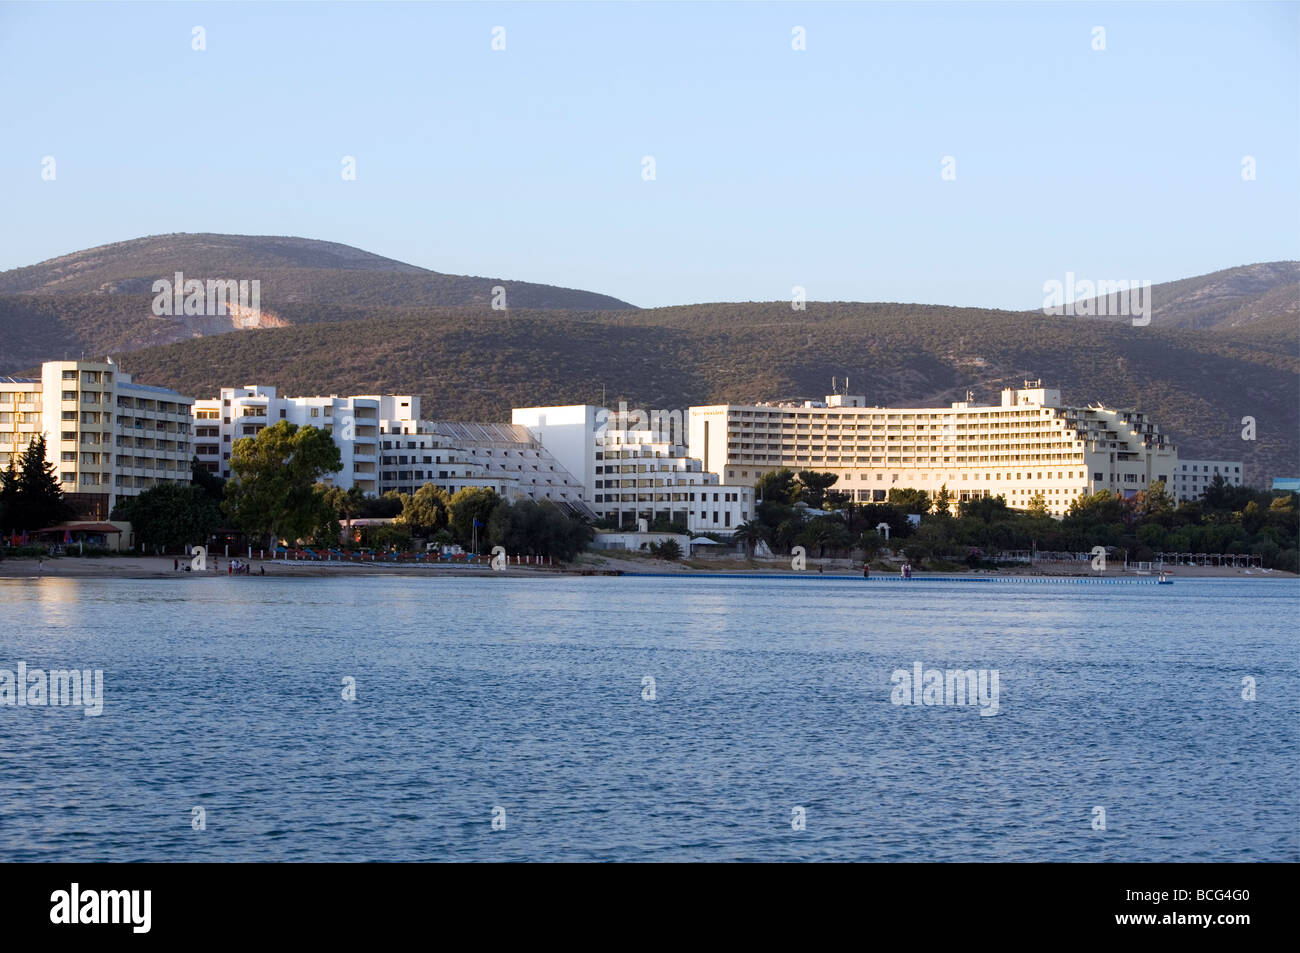 Popular large hotel watefront complexes - Akbuk,  Didim, Turkey, Asia Minor, Eurasia - Stock Image